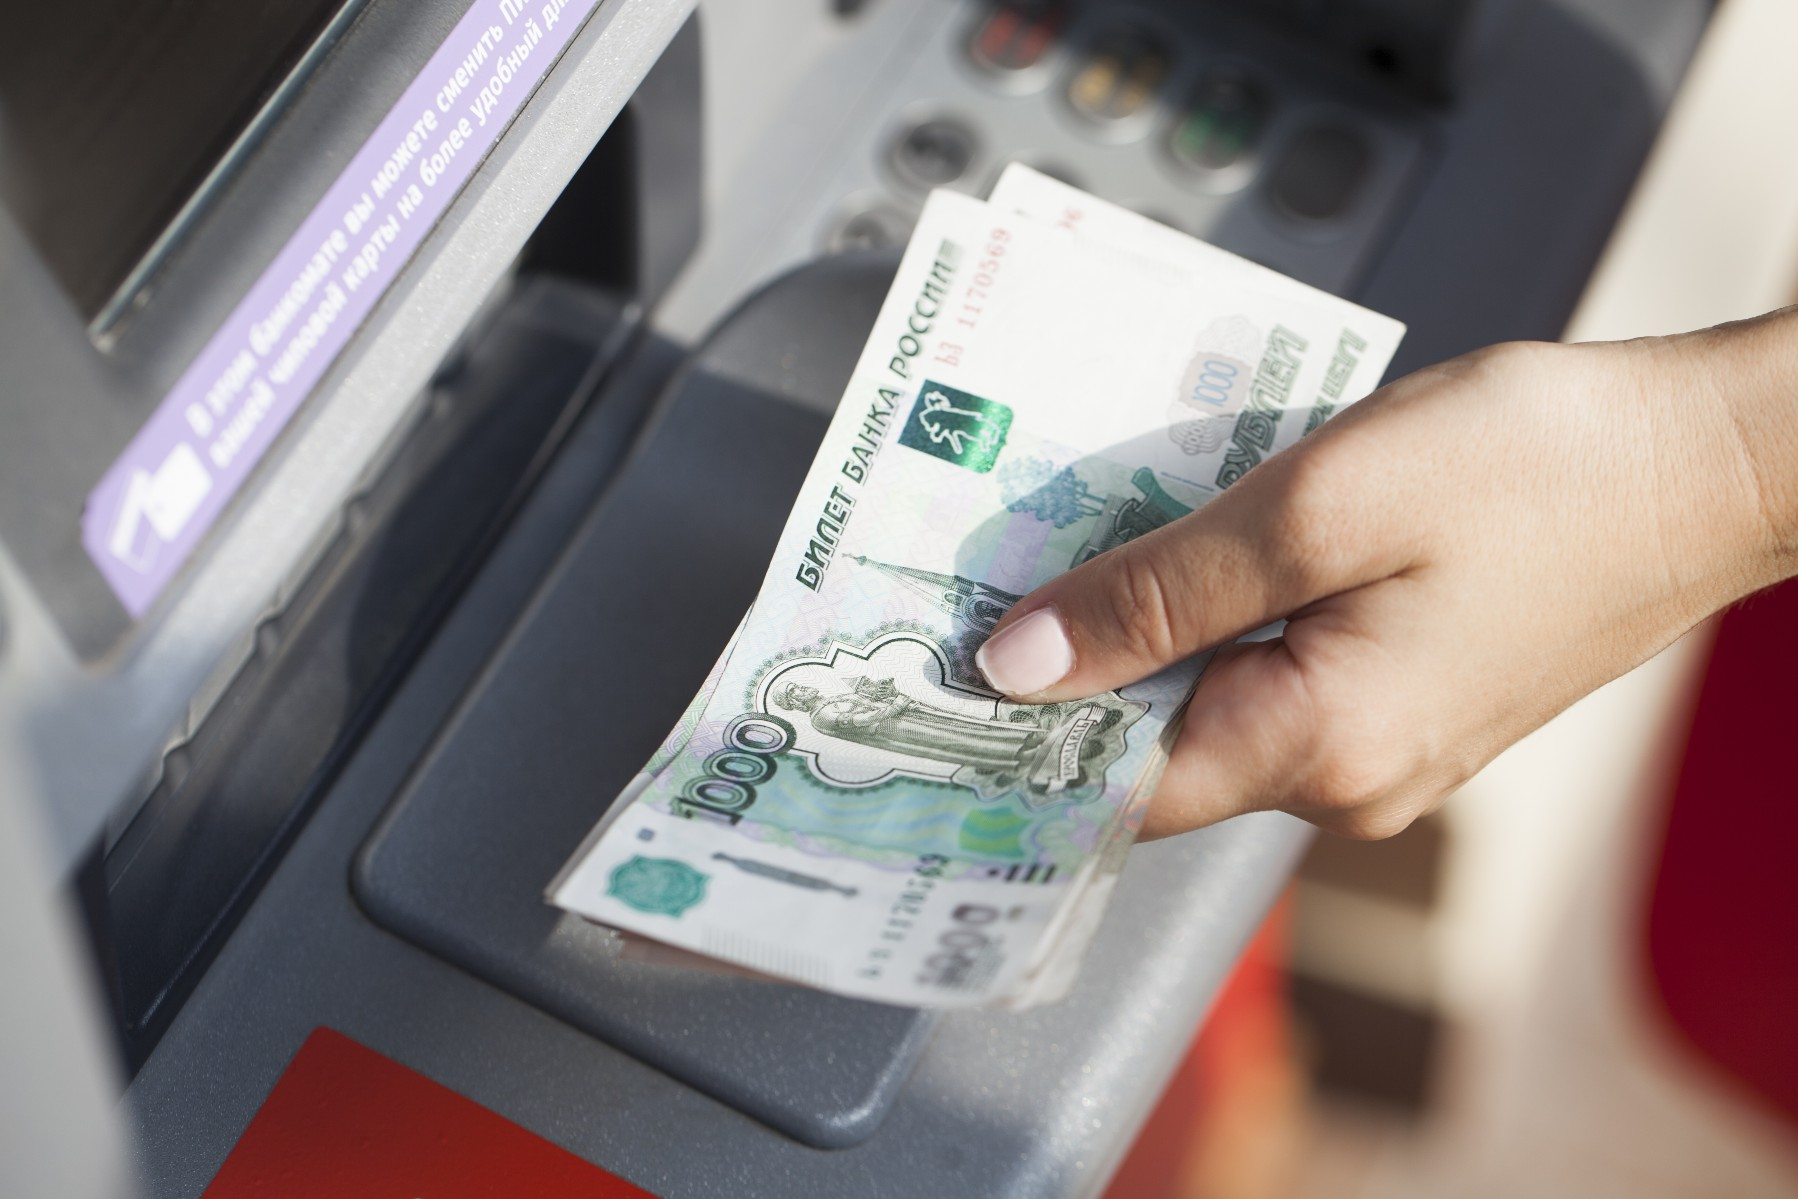 Russia ATM cash withdrawal